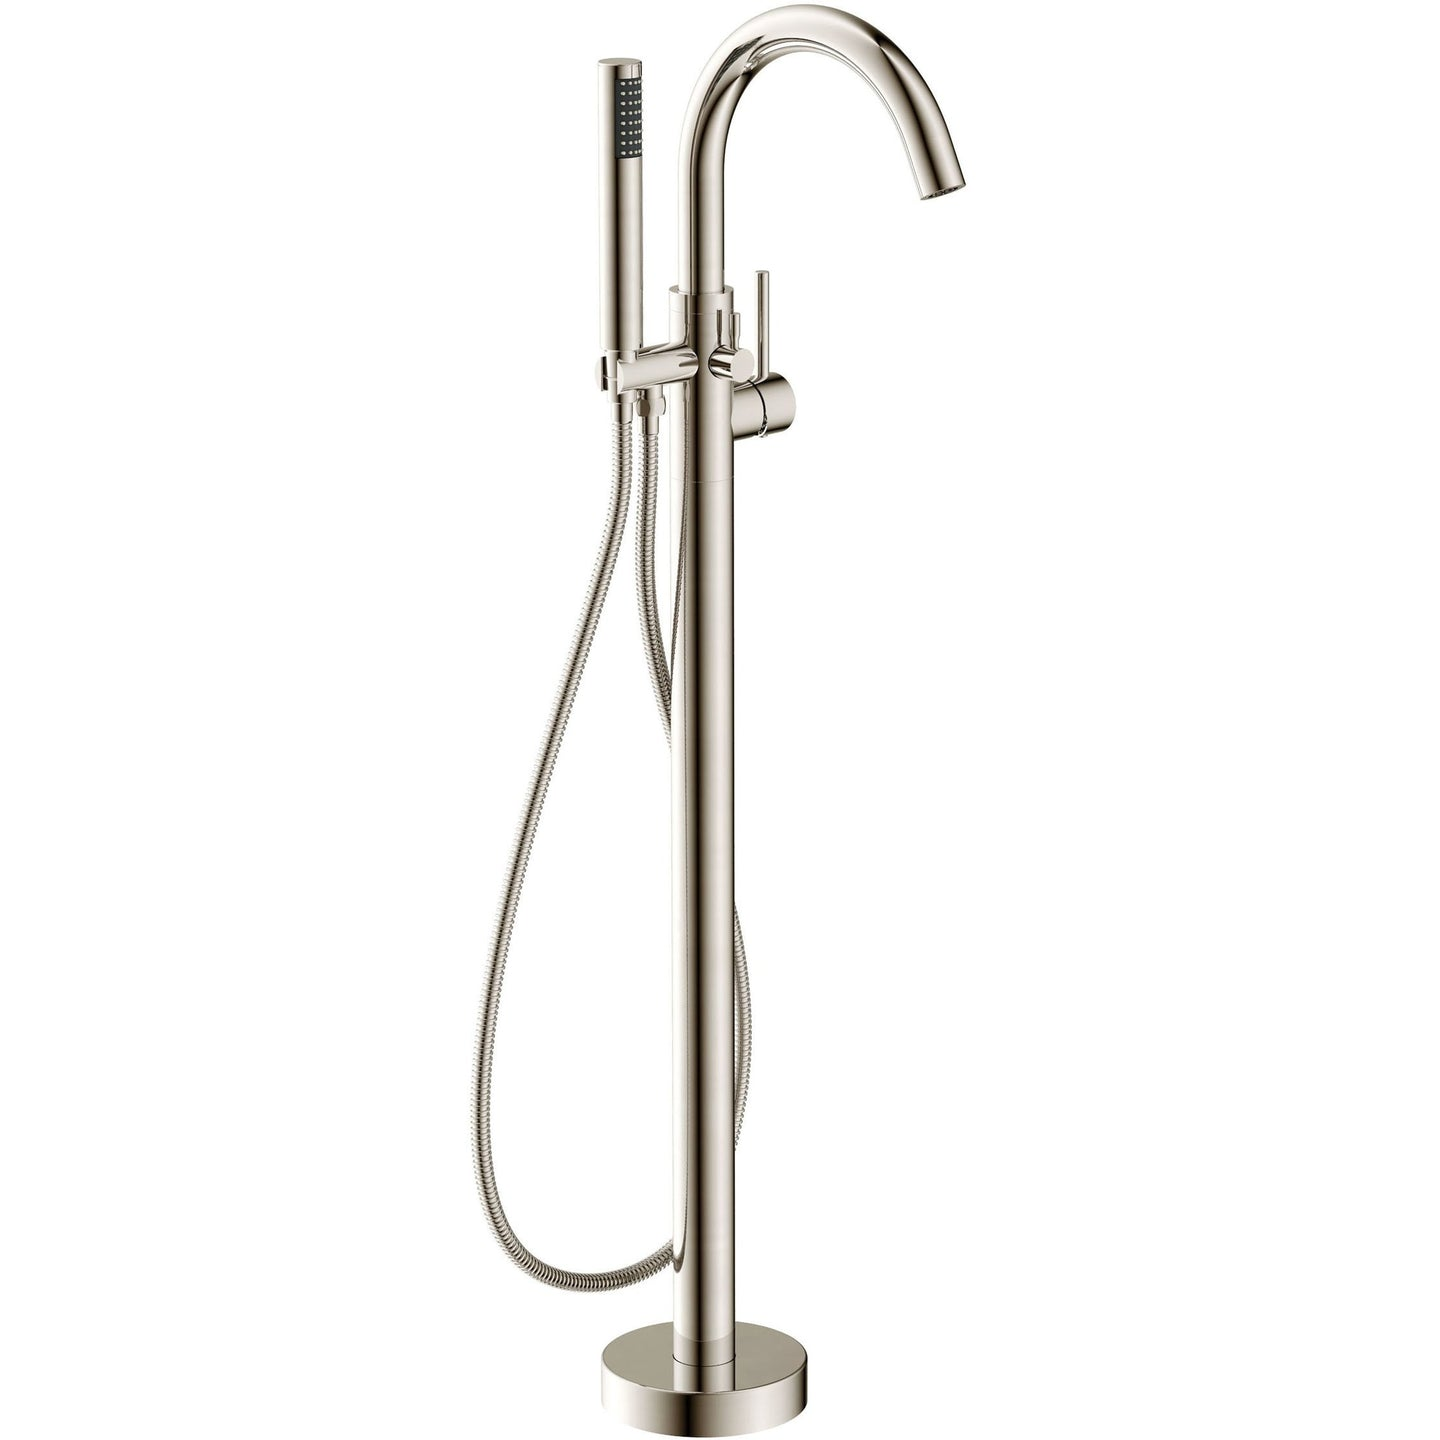 Anzzi Kros - Free Standing Tub Filler with Handshower